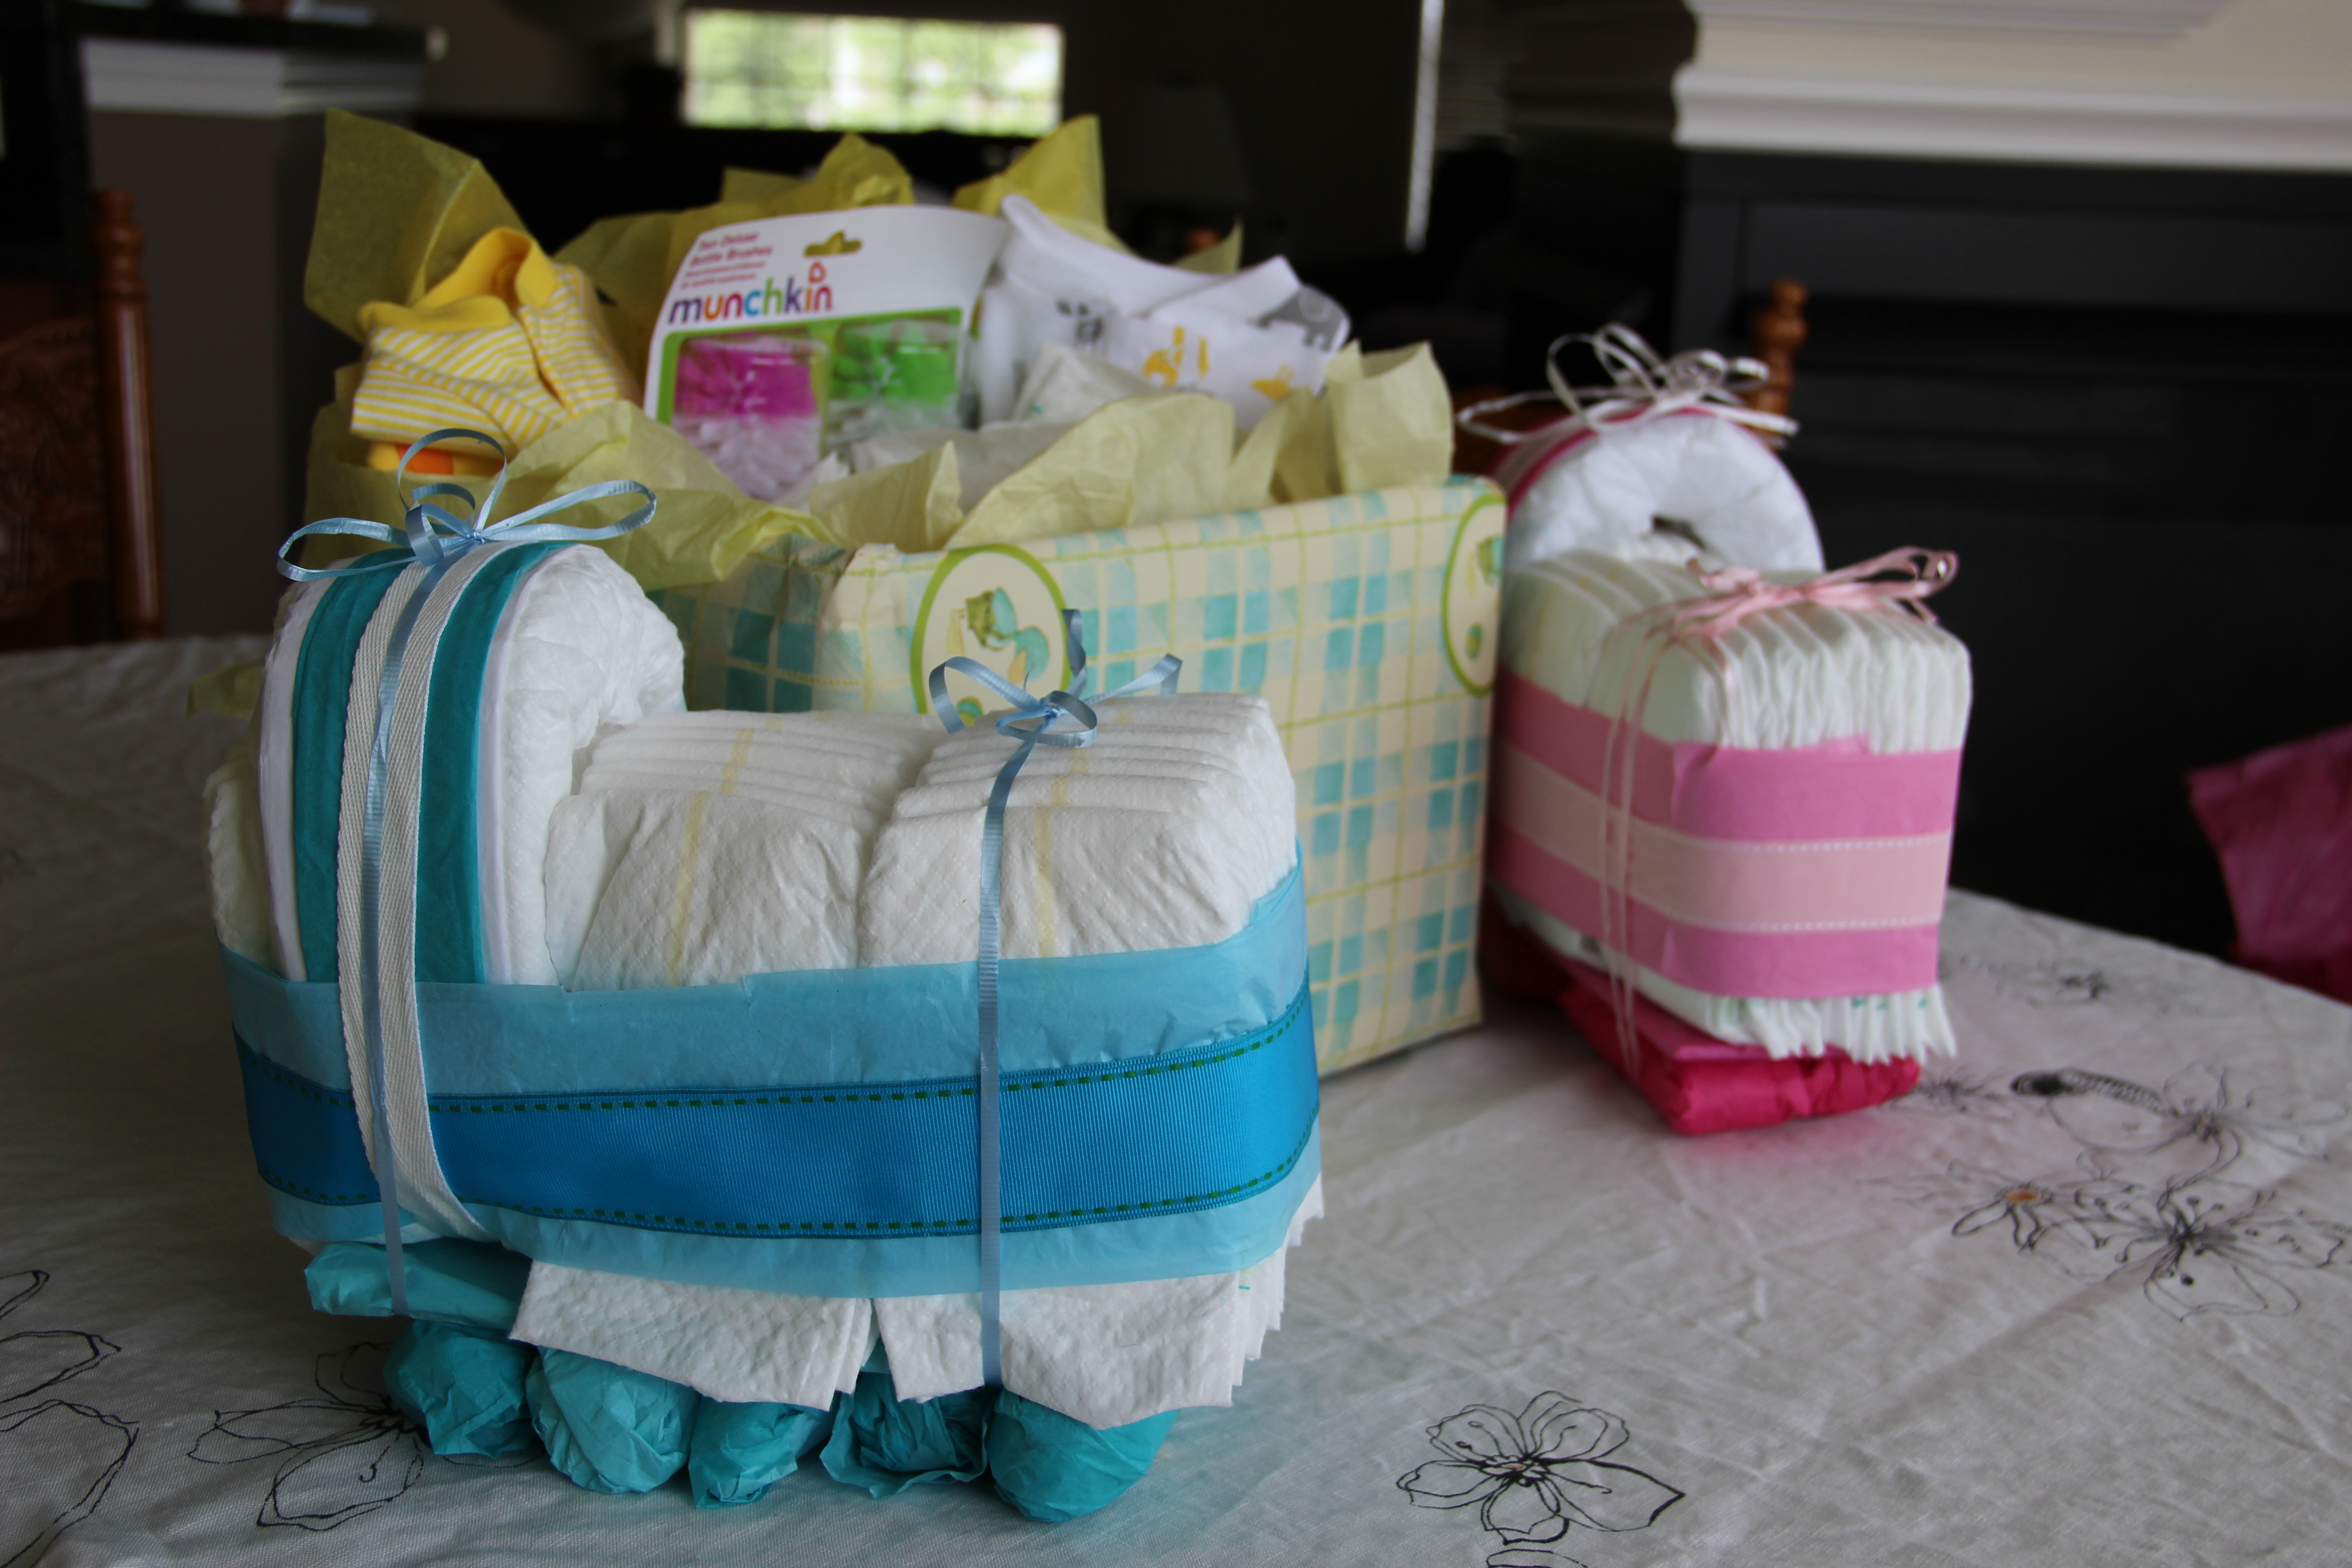 Baby Shower Gift List Ideas  The Importance of Being Cleveland